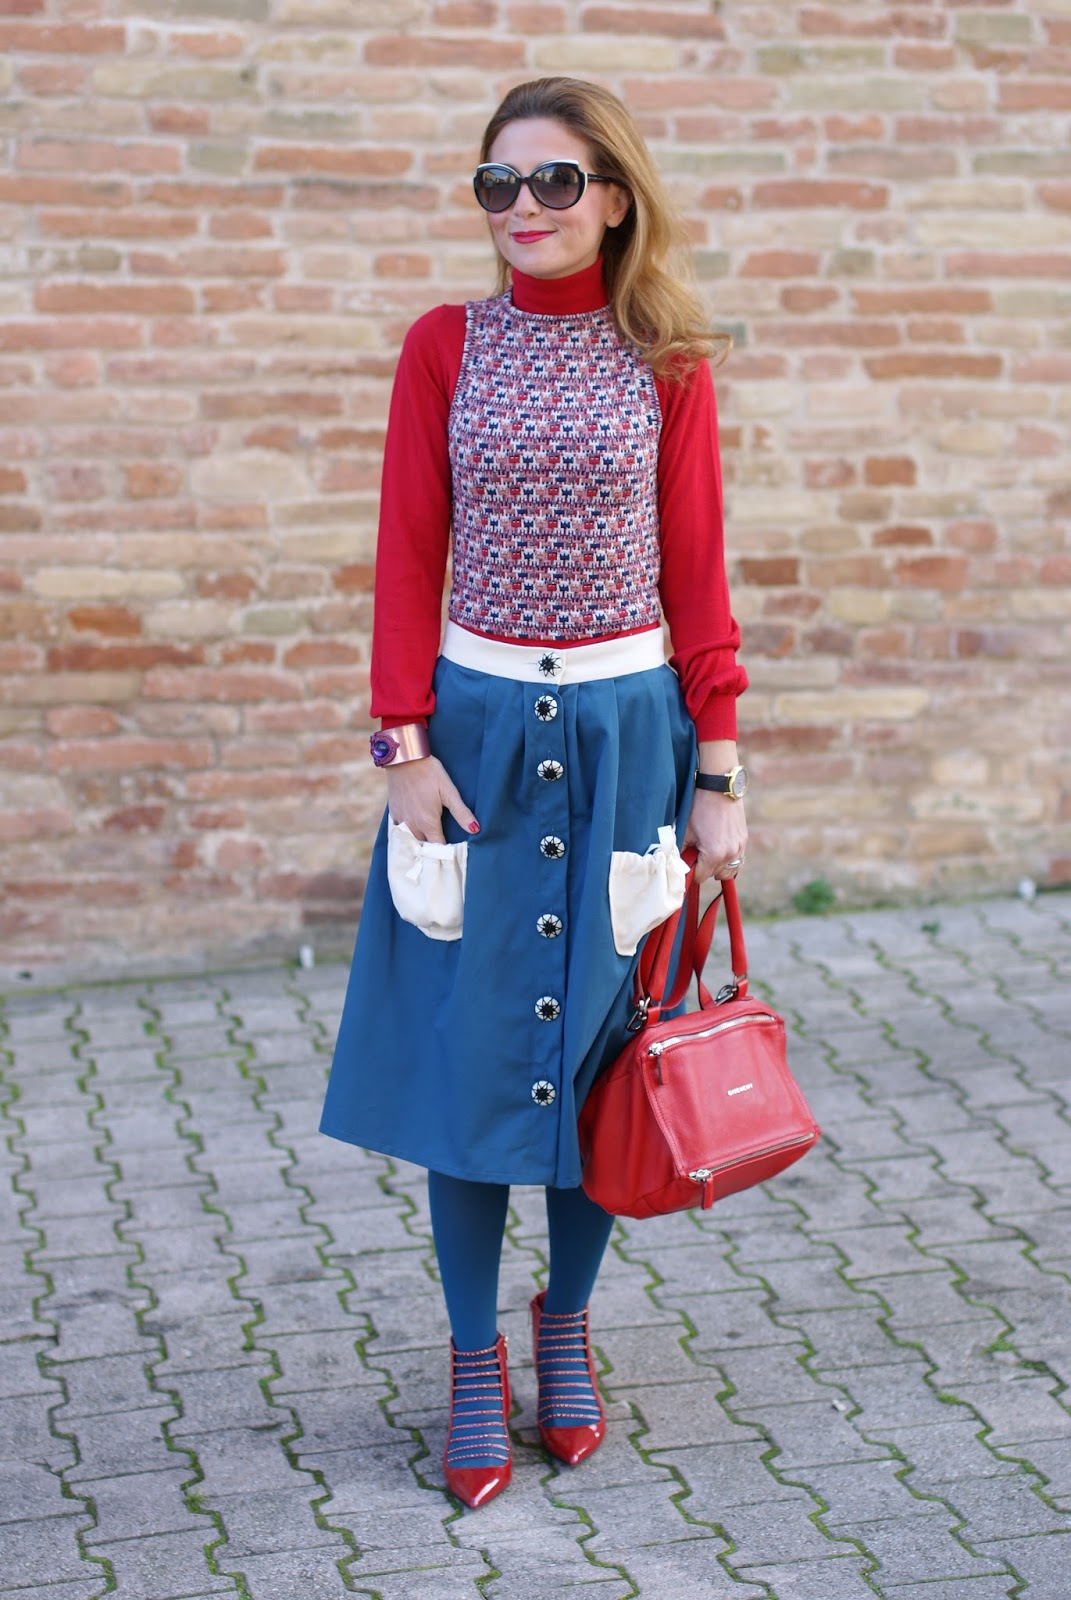 Opposes Complementaires Alice midi skirt on Fashion and Cookies fashion blog and Le Silla heels